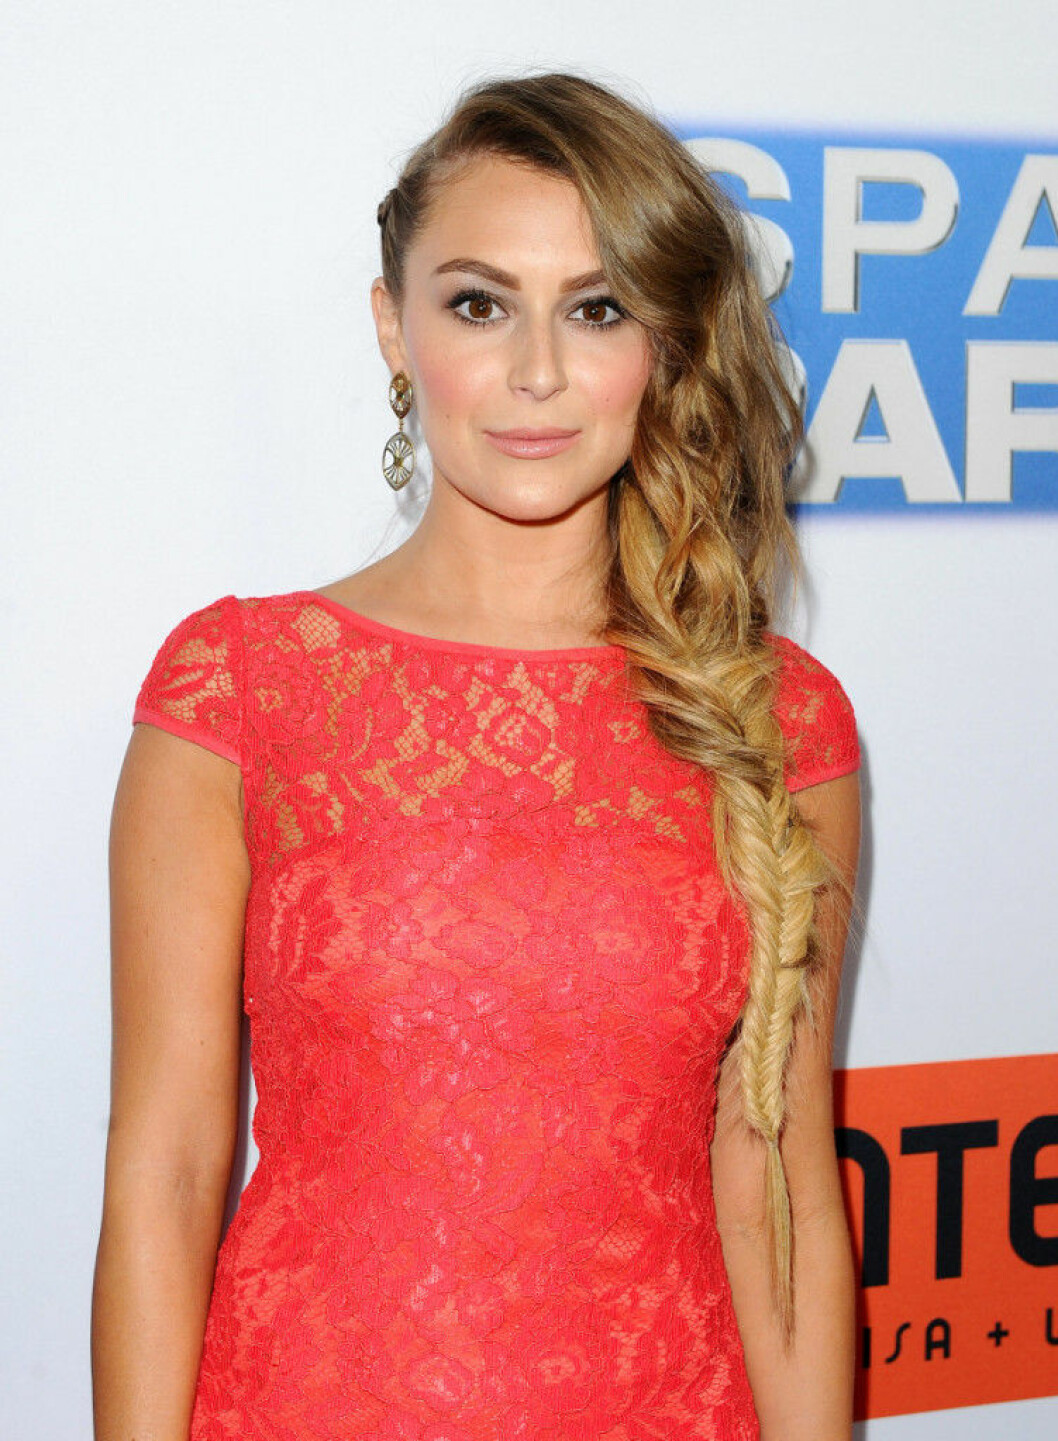 , West Hollywood, CA - 01/08/2015 - Spare Parts Los Angeles Premiere -PICTURED: Alexa Vega -PHOTO by: Vince Flores/startraksphoto.com -VIF22982 Editorial - Rights Managed Image - Please contact www.startraksphoto.com for licensing fee Startraks Photo New York, NY For licensing please call 212-414-9464 or email sales@startraksphoto.com Startraks Photo reserves the right to pursue unauthorized users of this image. If you violate our intellectual property you may be liable for actual damages, loss of income, and profits you derive from the use of this image, and where appropriate, the cost of collection and/or statutory damages.IBL